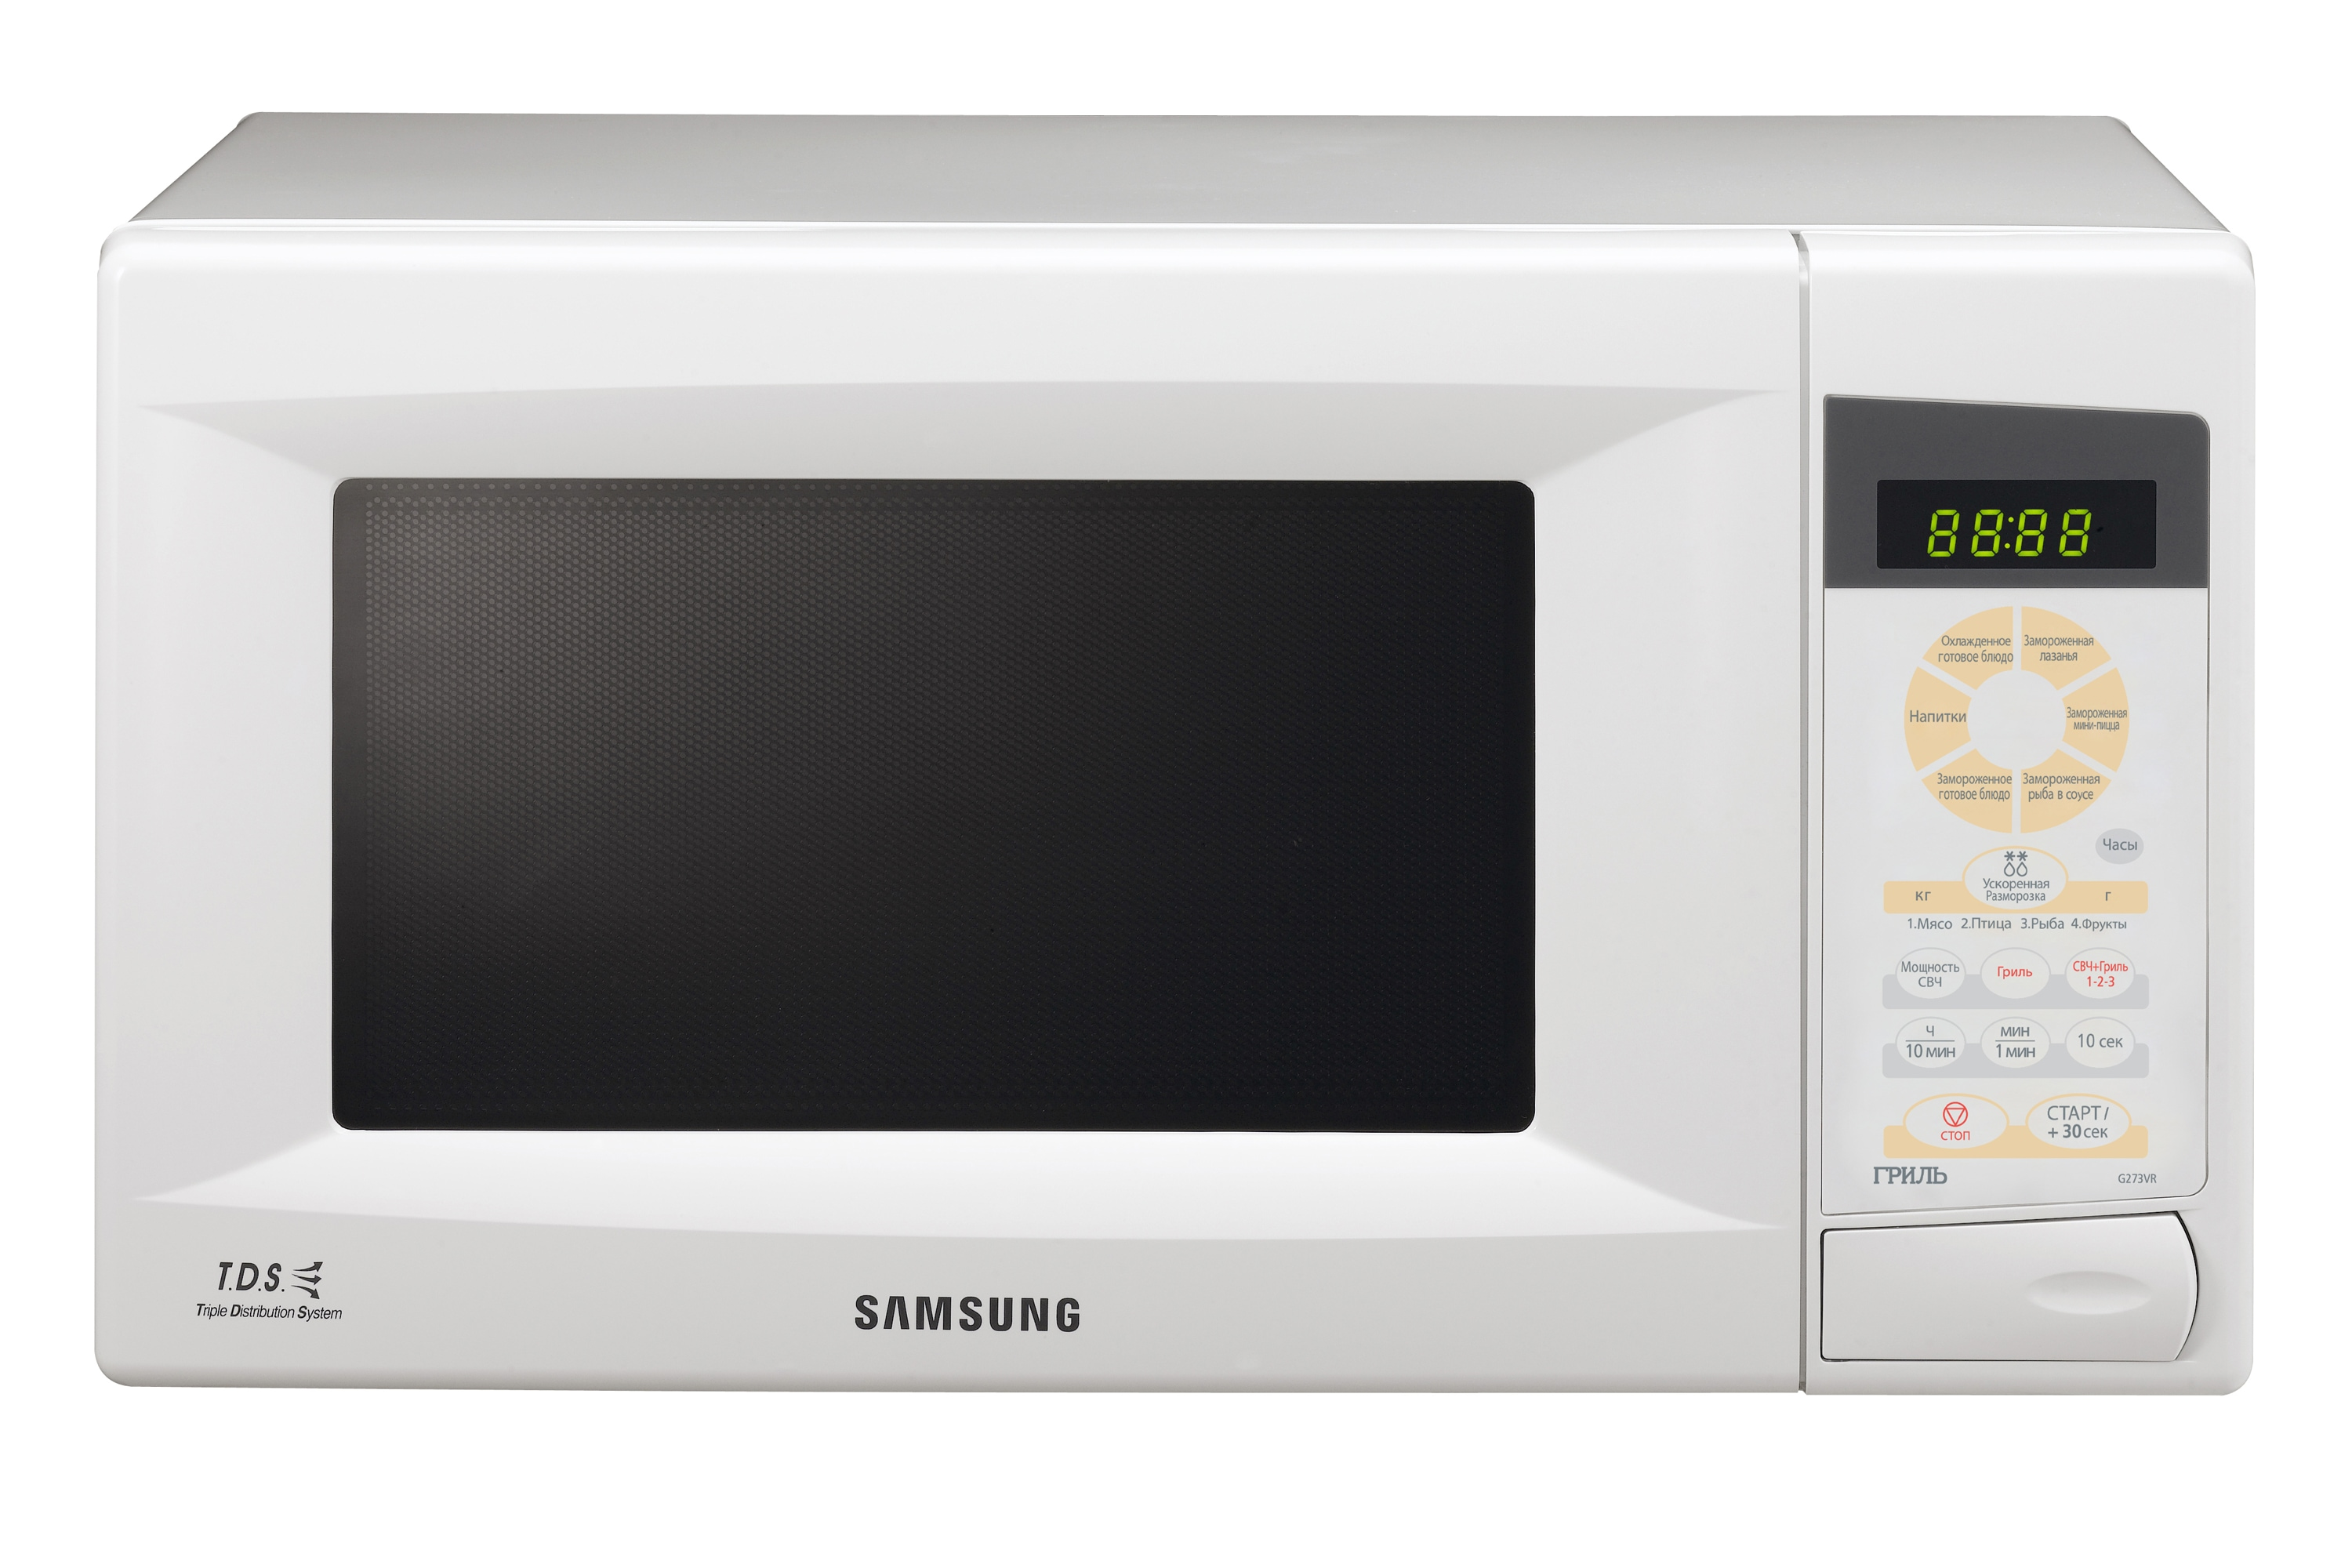 Samsung Microwave Oven Manual Pdf Bruin Blog